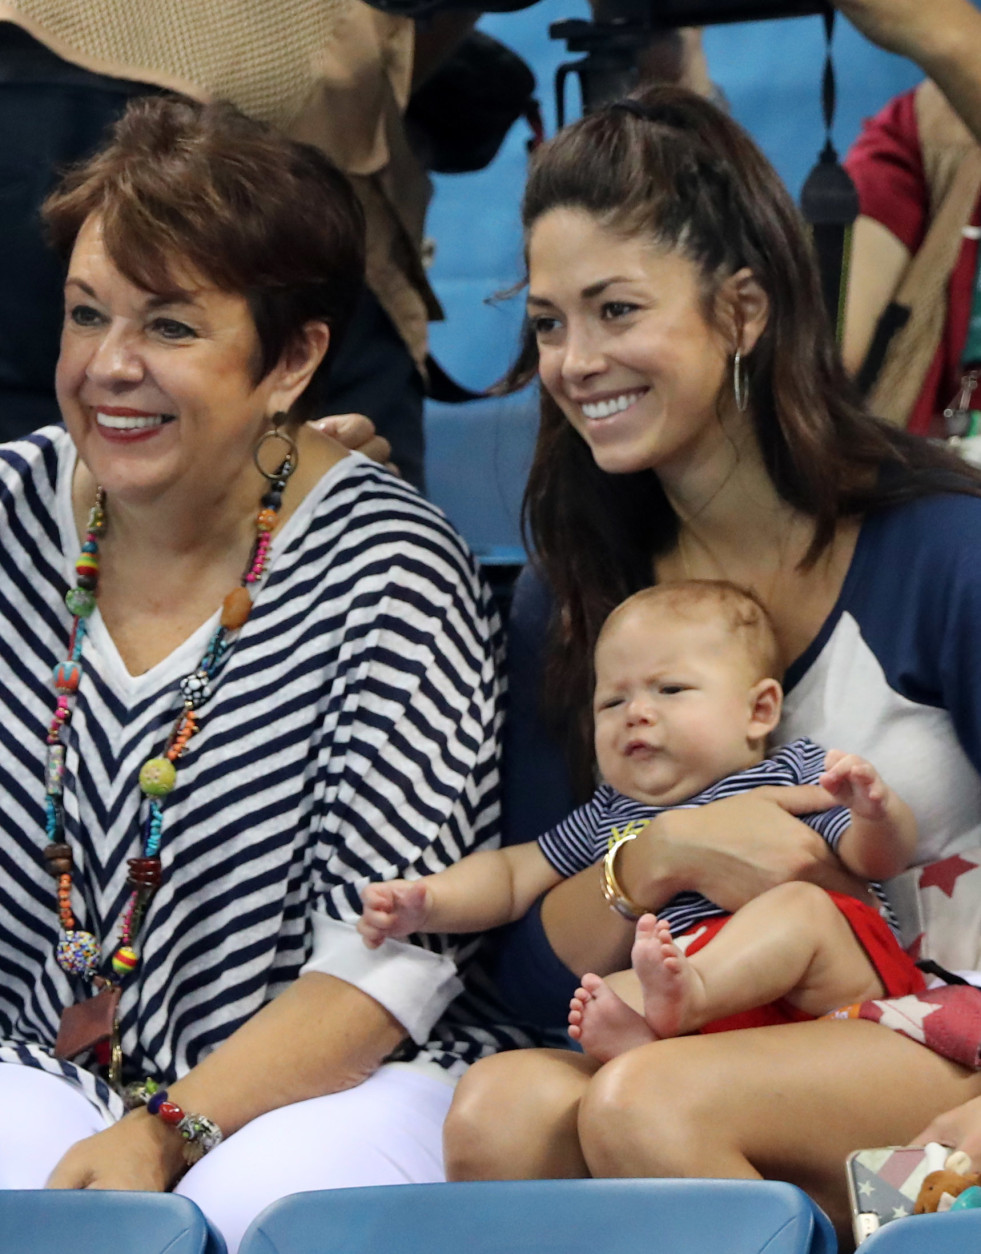 The family of United States' Michael Phelps, mother Debbie, left, and his fiance Nicole Johnson holding their baby Boomer watch the swimming competitions at the 2016 Summer Olympics, Monday, Aug. 8, 2016, in Rio de Janeiro, Brazil. (AP Photo/Lee Jin-man)